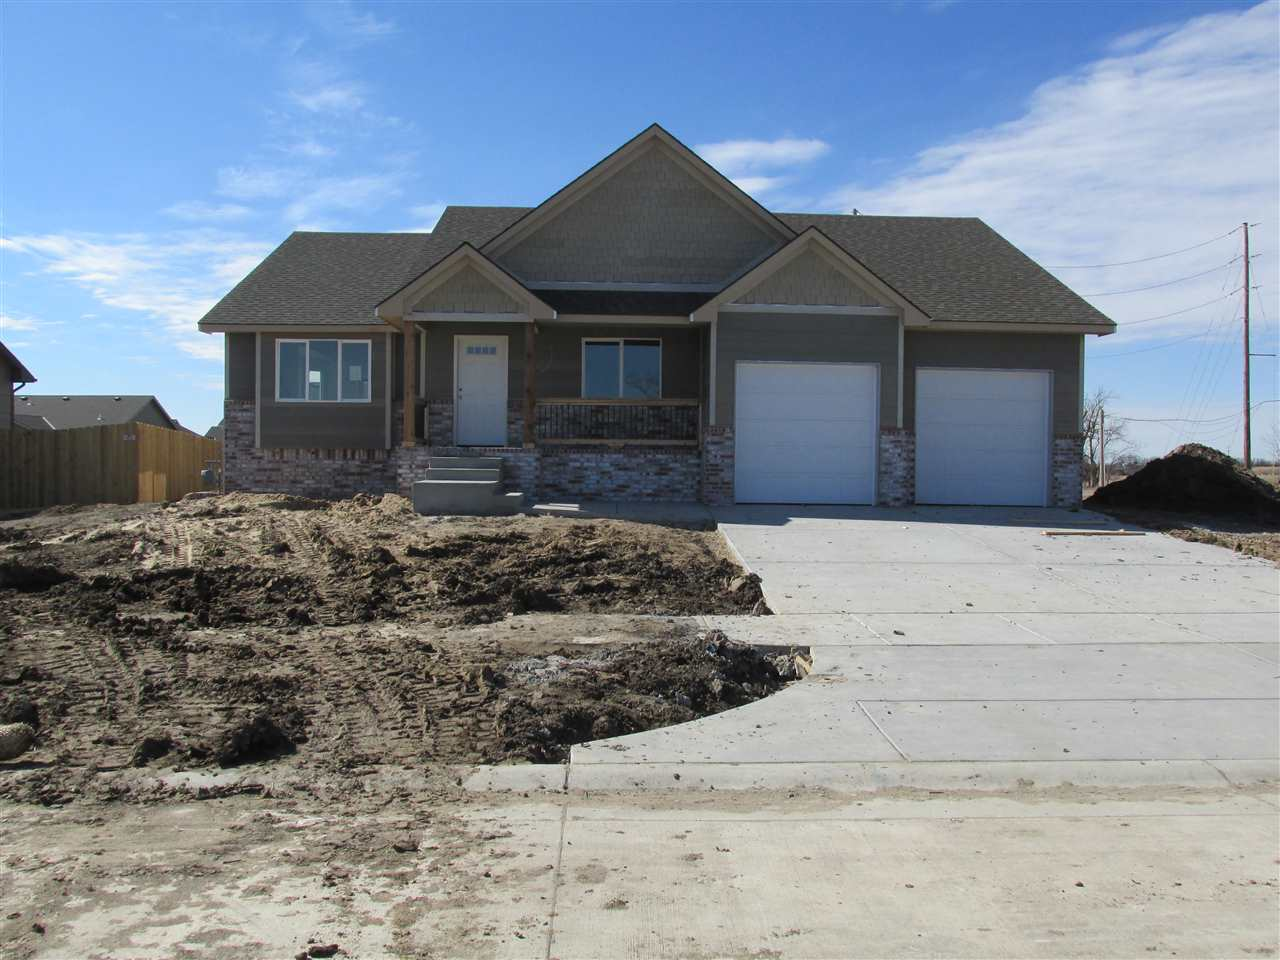 Popular Floor Plan in the Rock Spring Subdivision**This Spacious 2 Bedroom, 2 Bath Ranch has an Isla